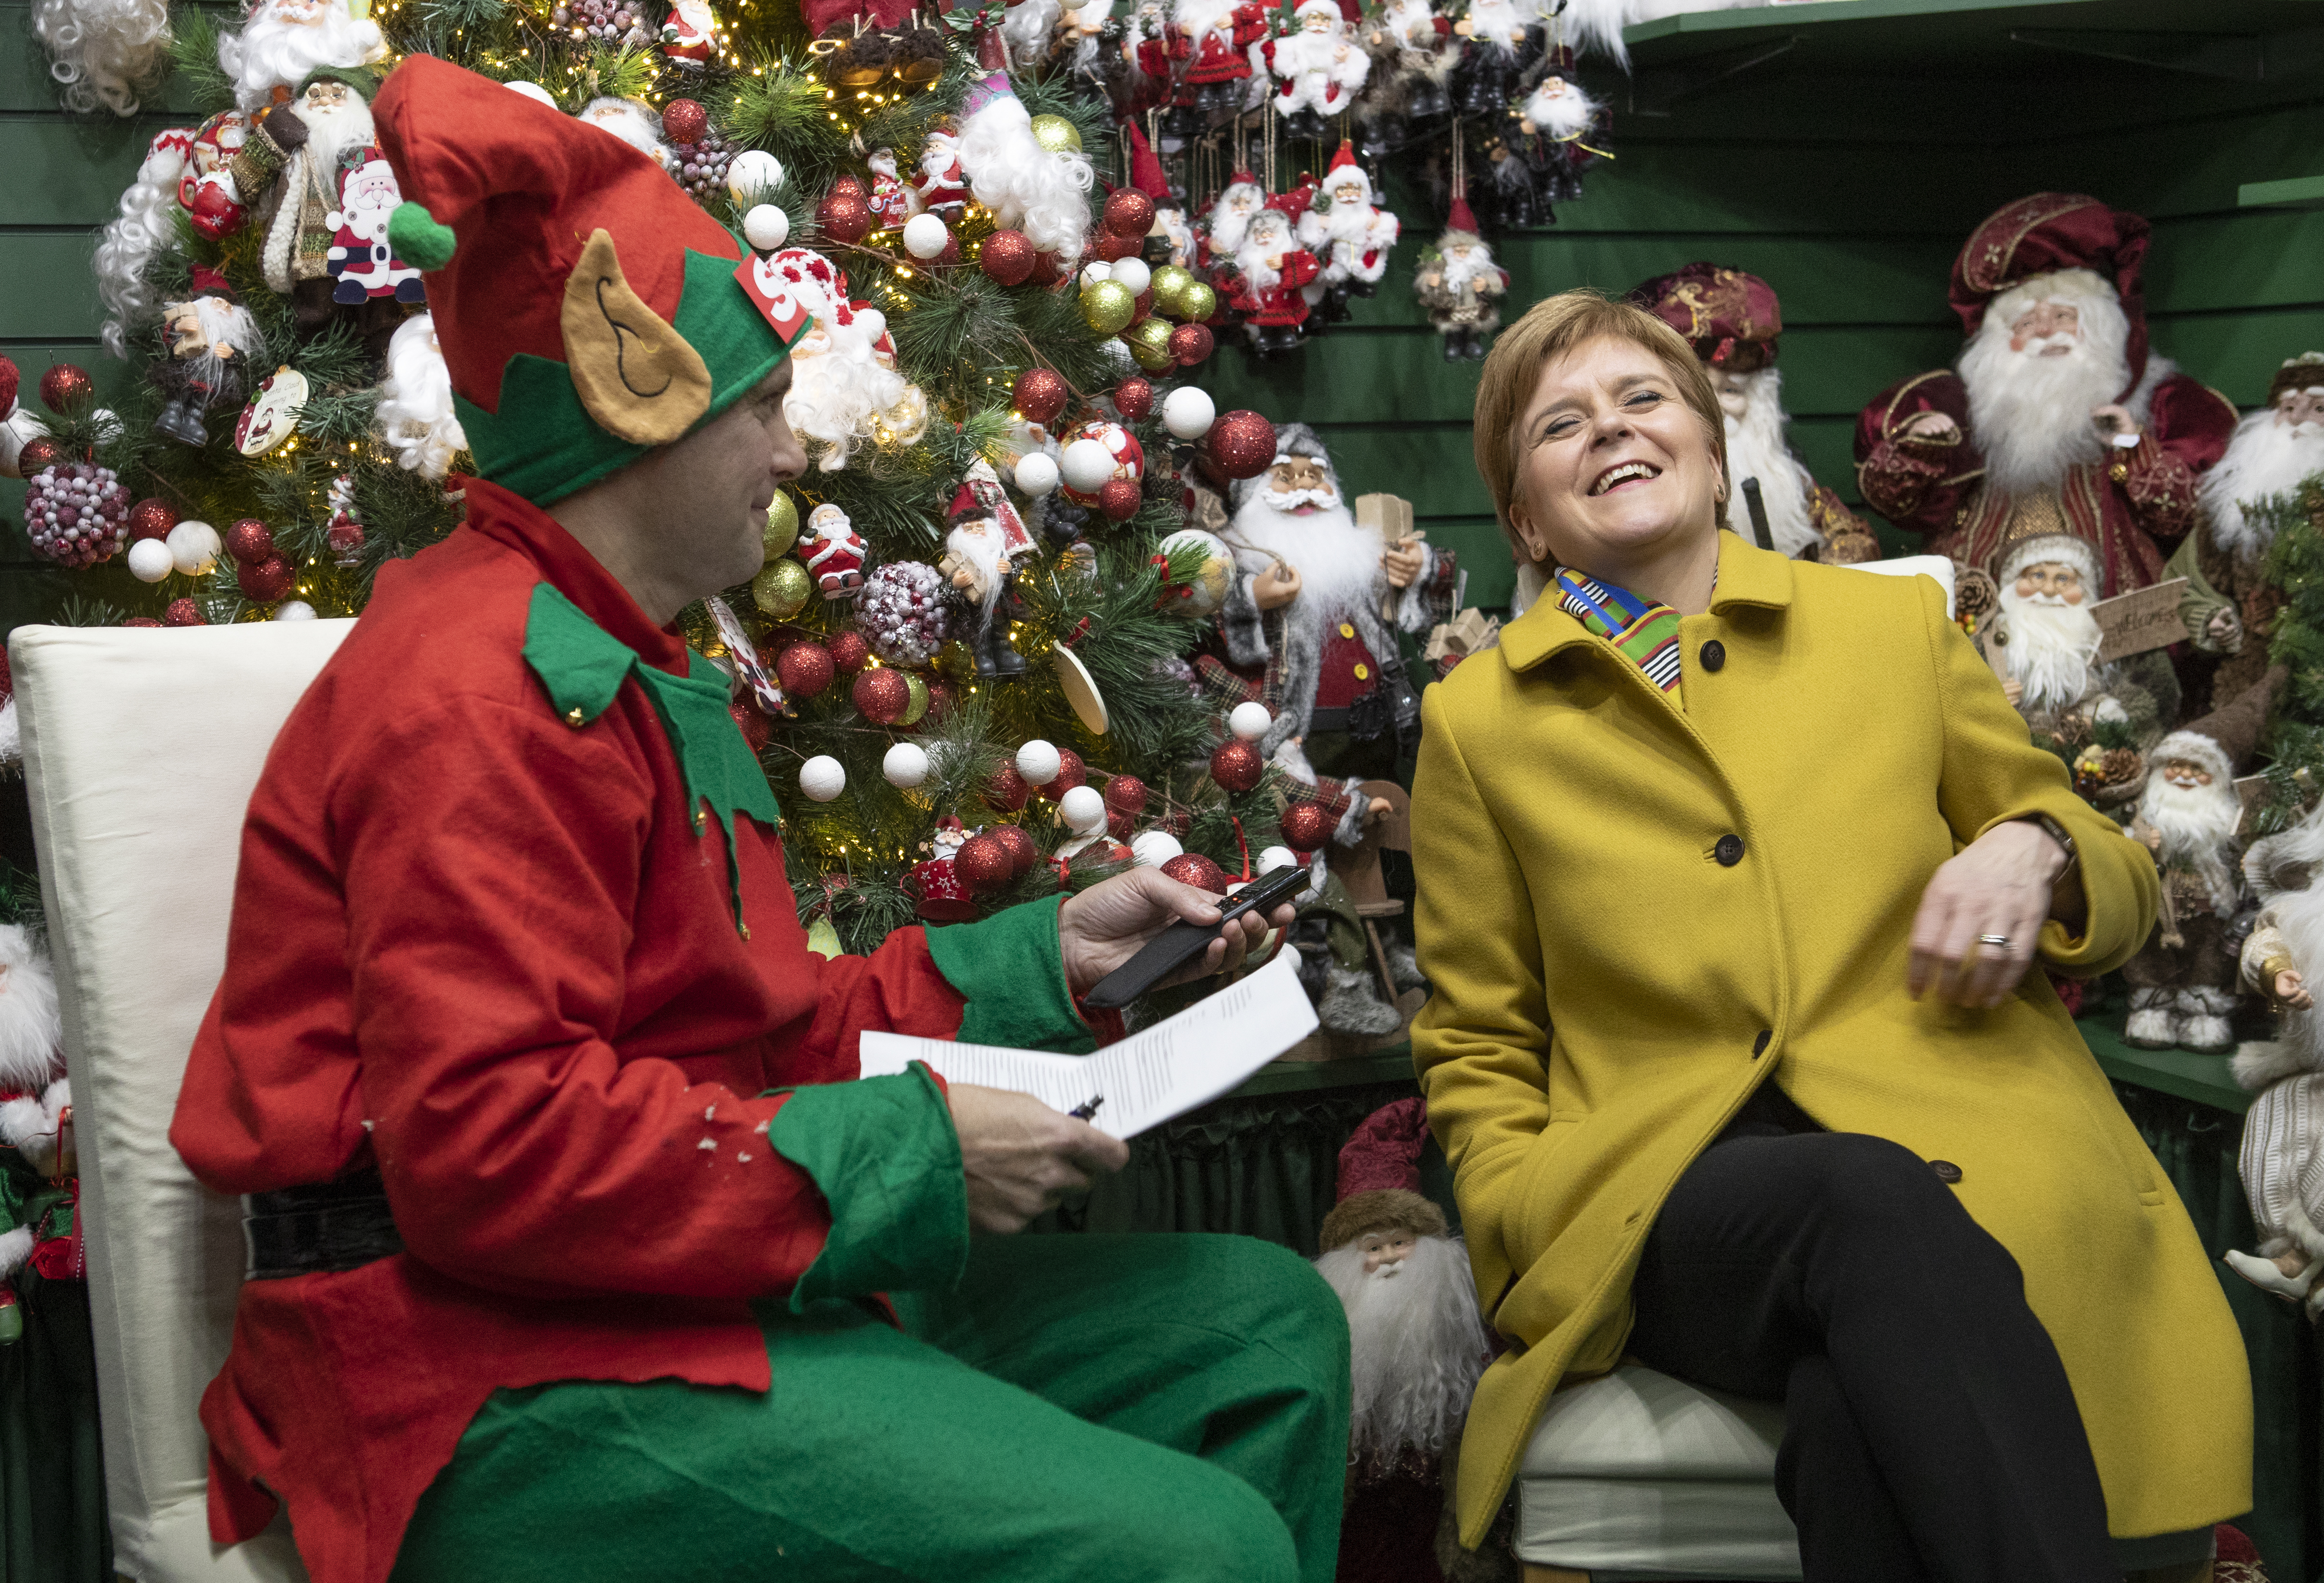 SNP leader Nicola Sturgeon is interviewed by a journalist dressed as a Christmas elf in the Nutcracker Christmas Village shop during a visit to Crieff Visitors Centre, Crieff, on the General Election campaign trail.